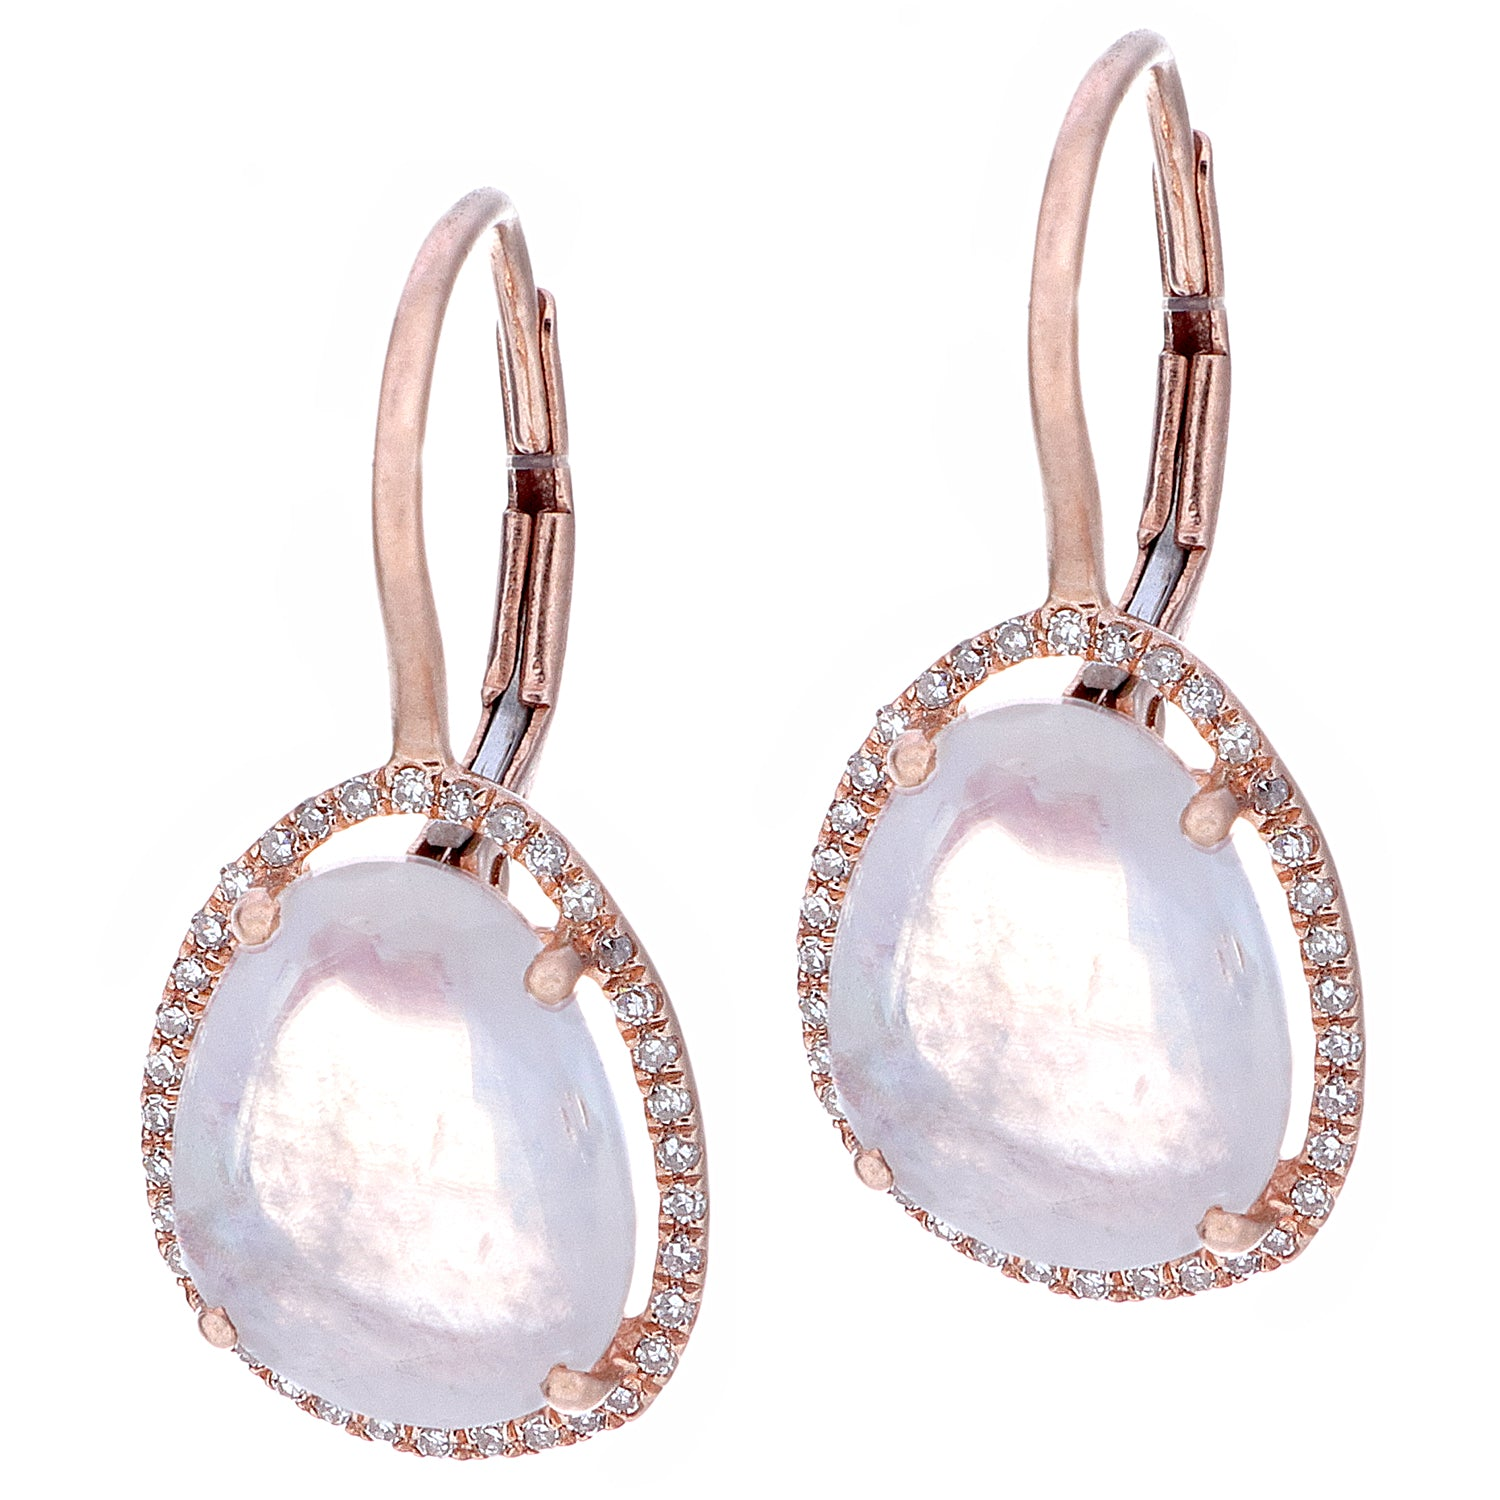 New Name Needed